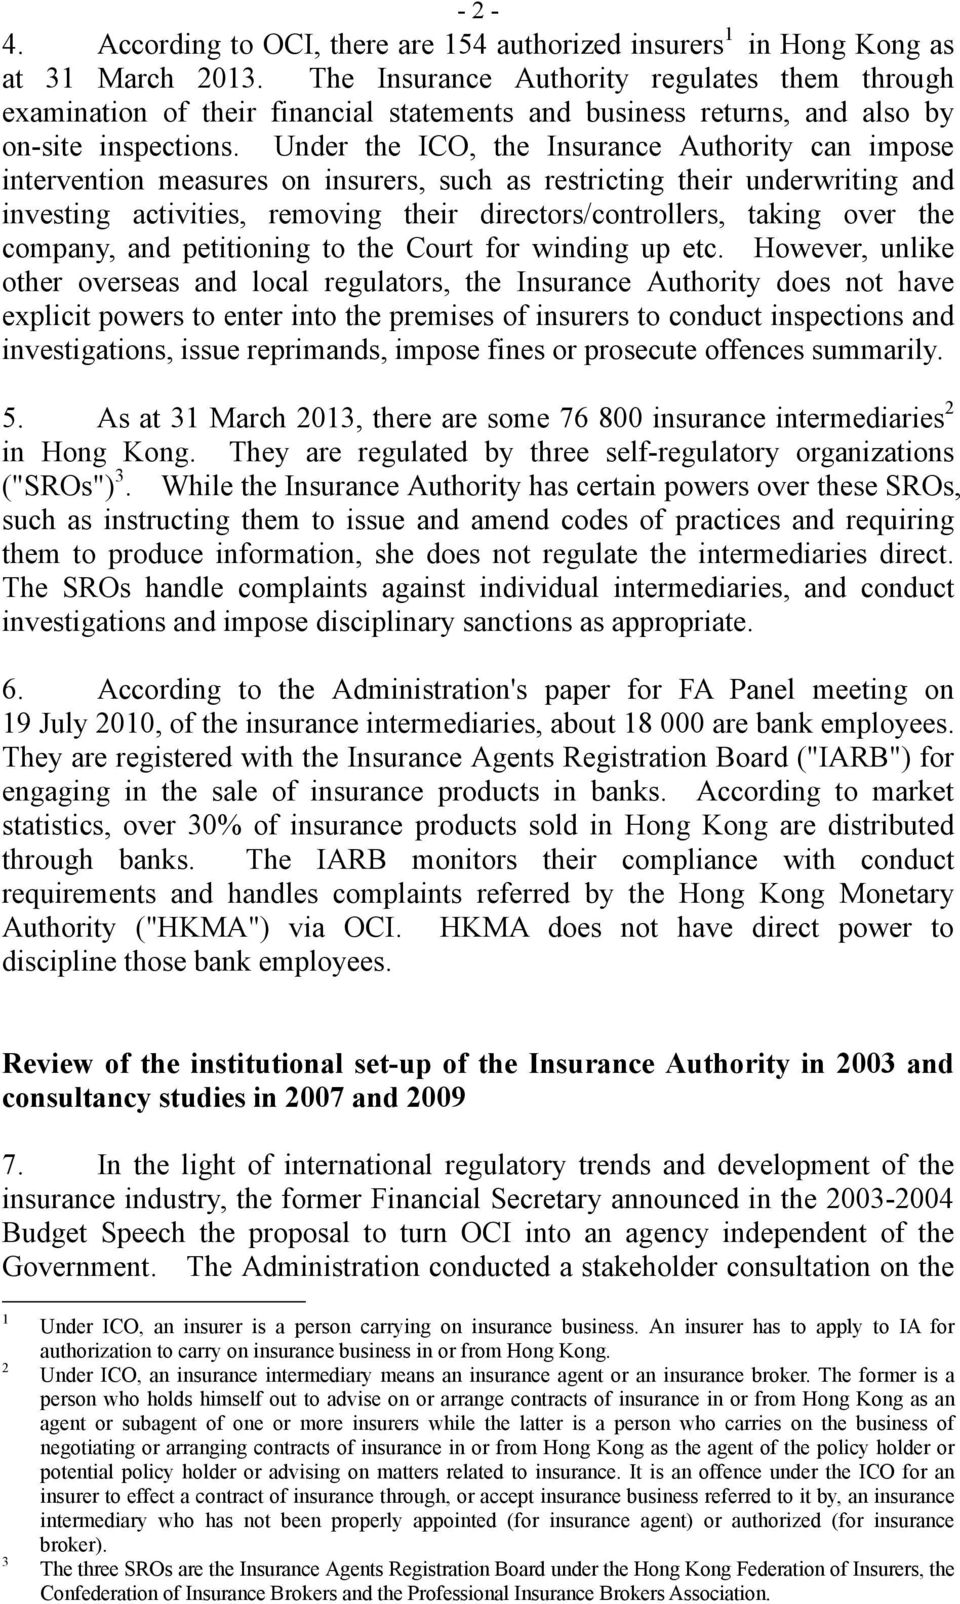 Under the ICO, the Insurance Authority can impose intervention measures on insurers, such as restricting their underwriting and investing activities, removing their directors/controllers, taking over